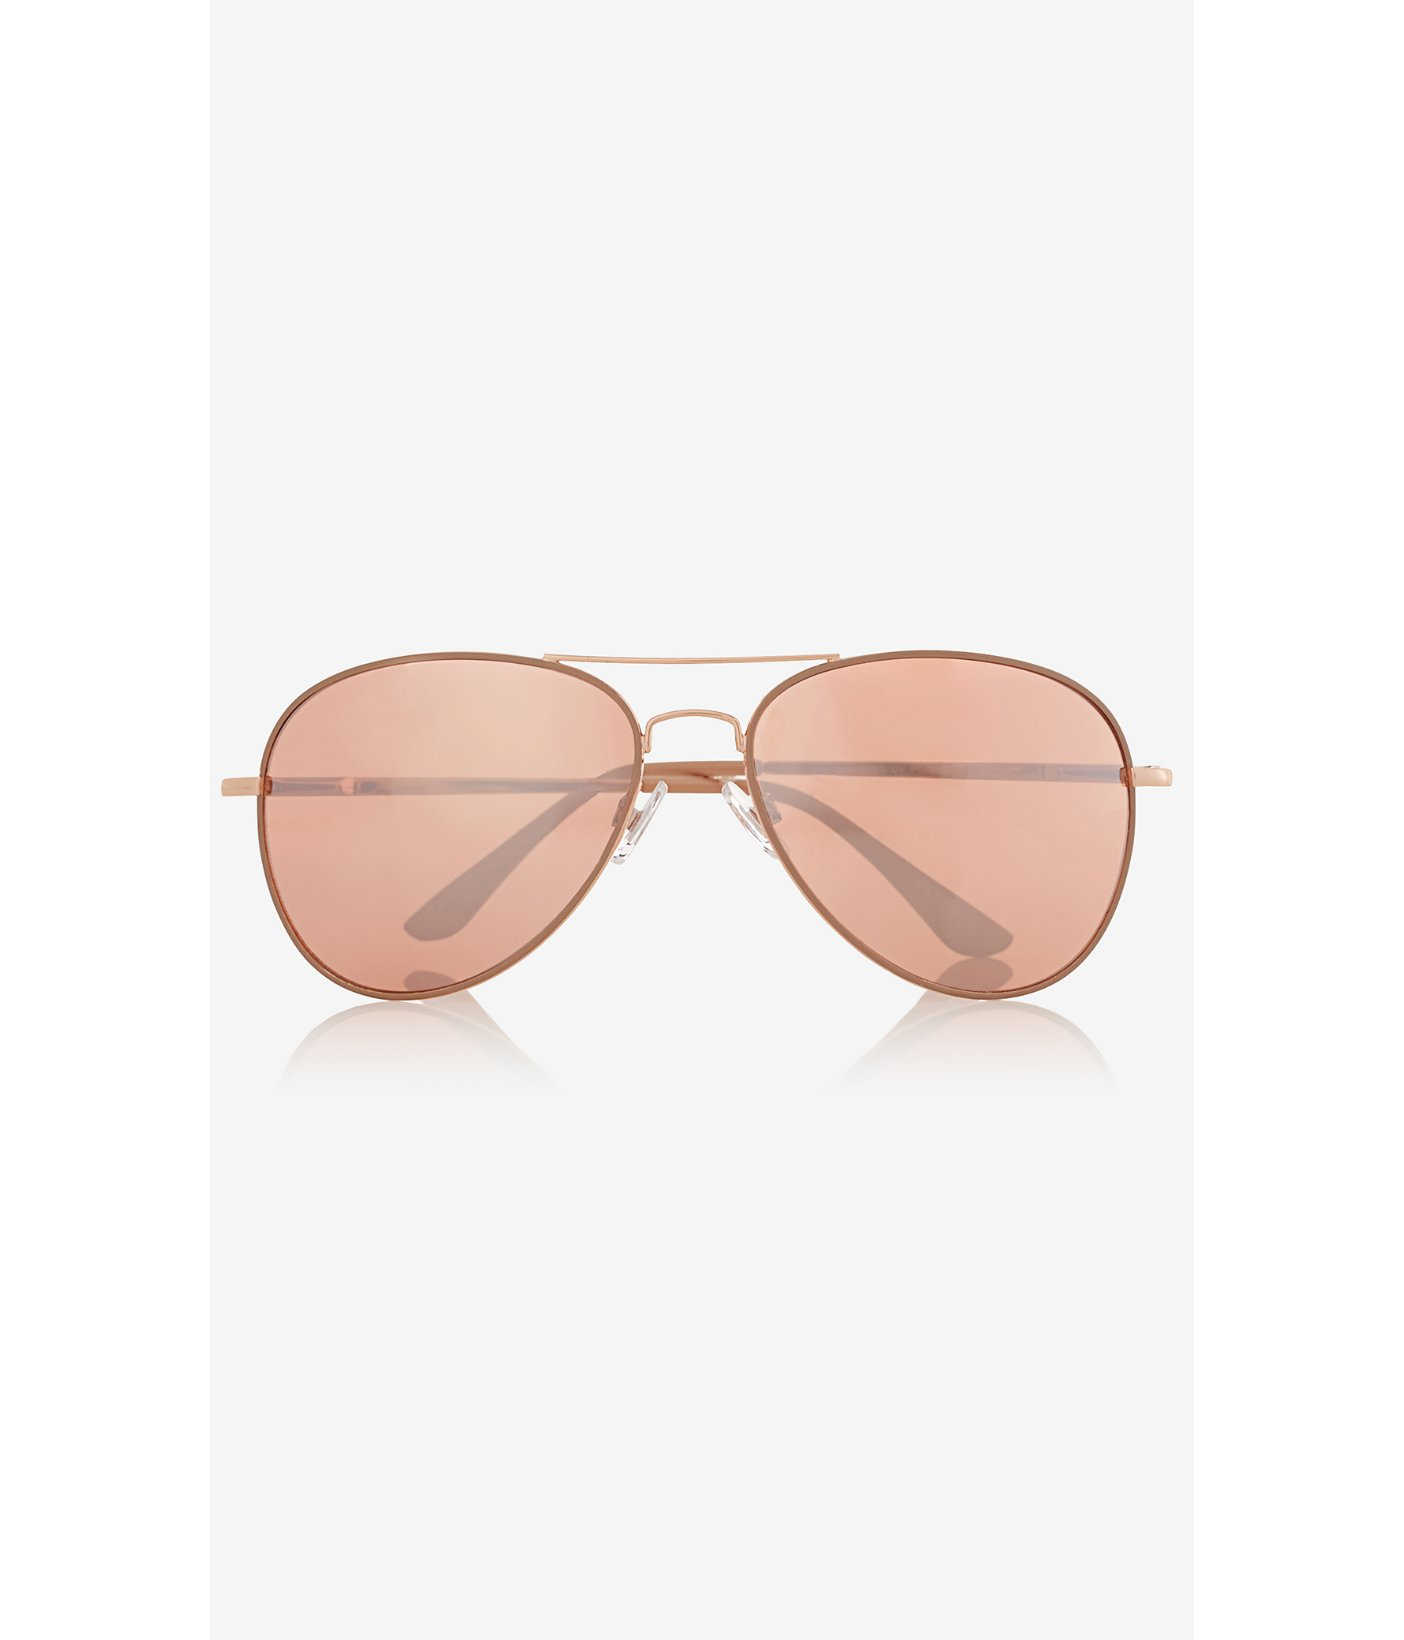 Express Mirrored Lens Aviator Sunglasses in Gold (ROSE